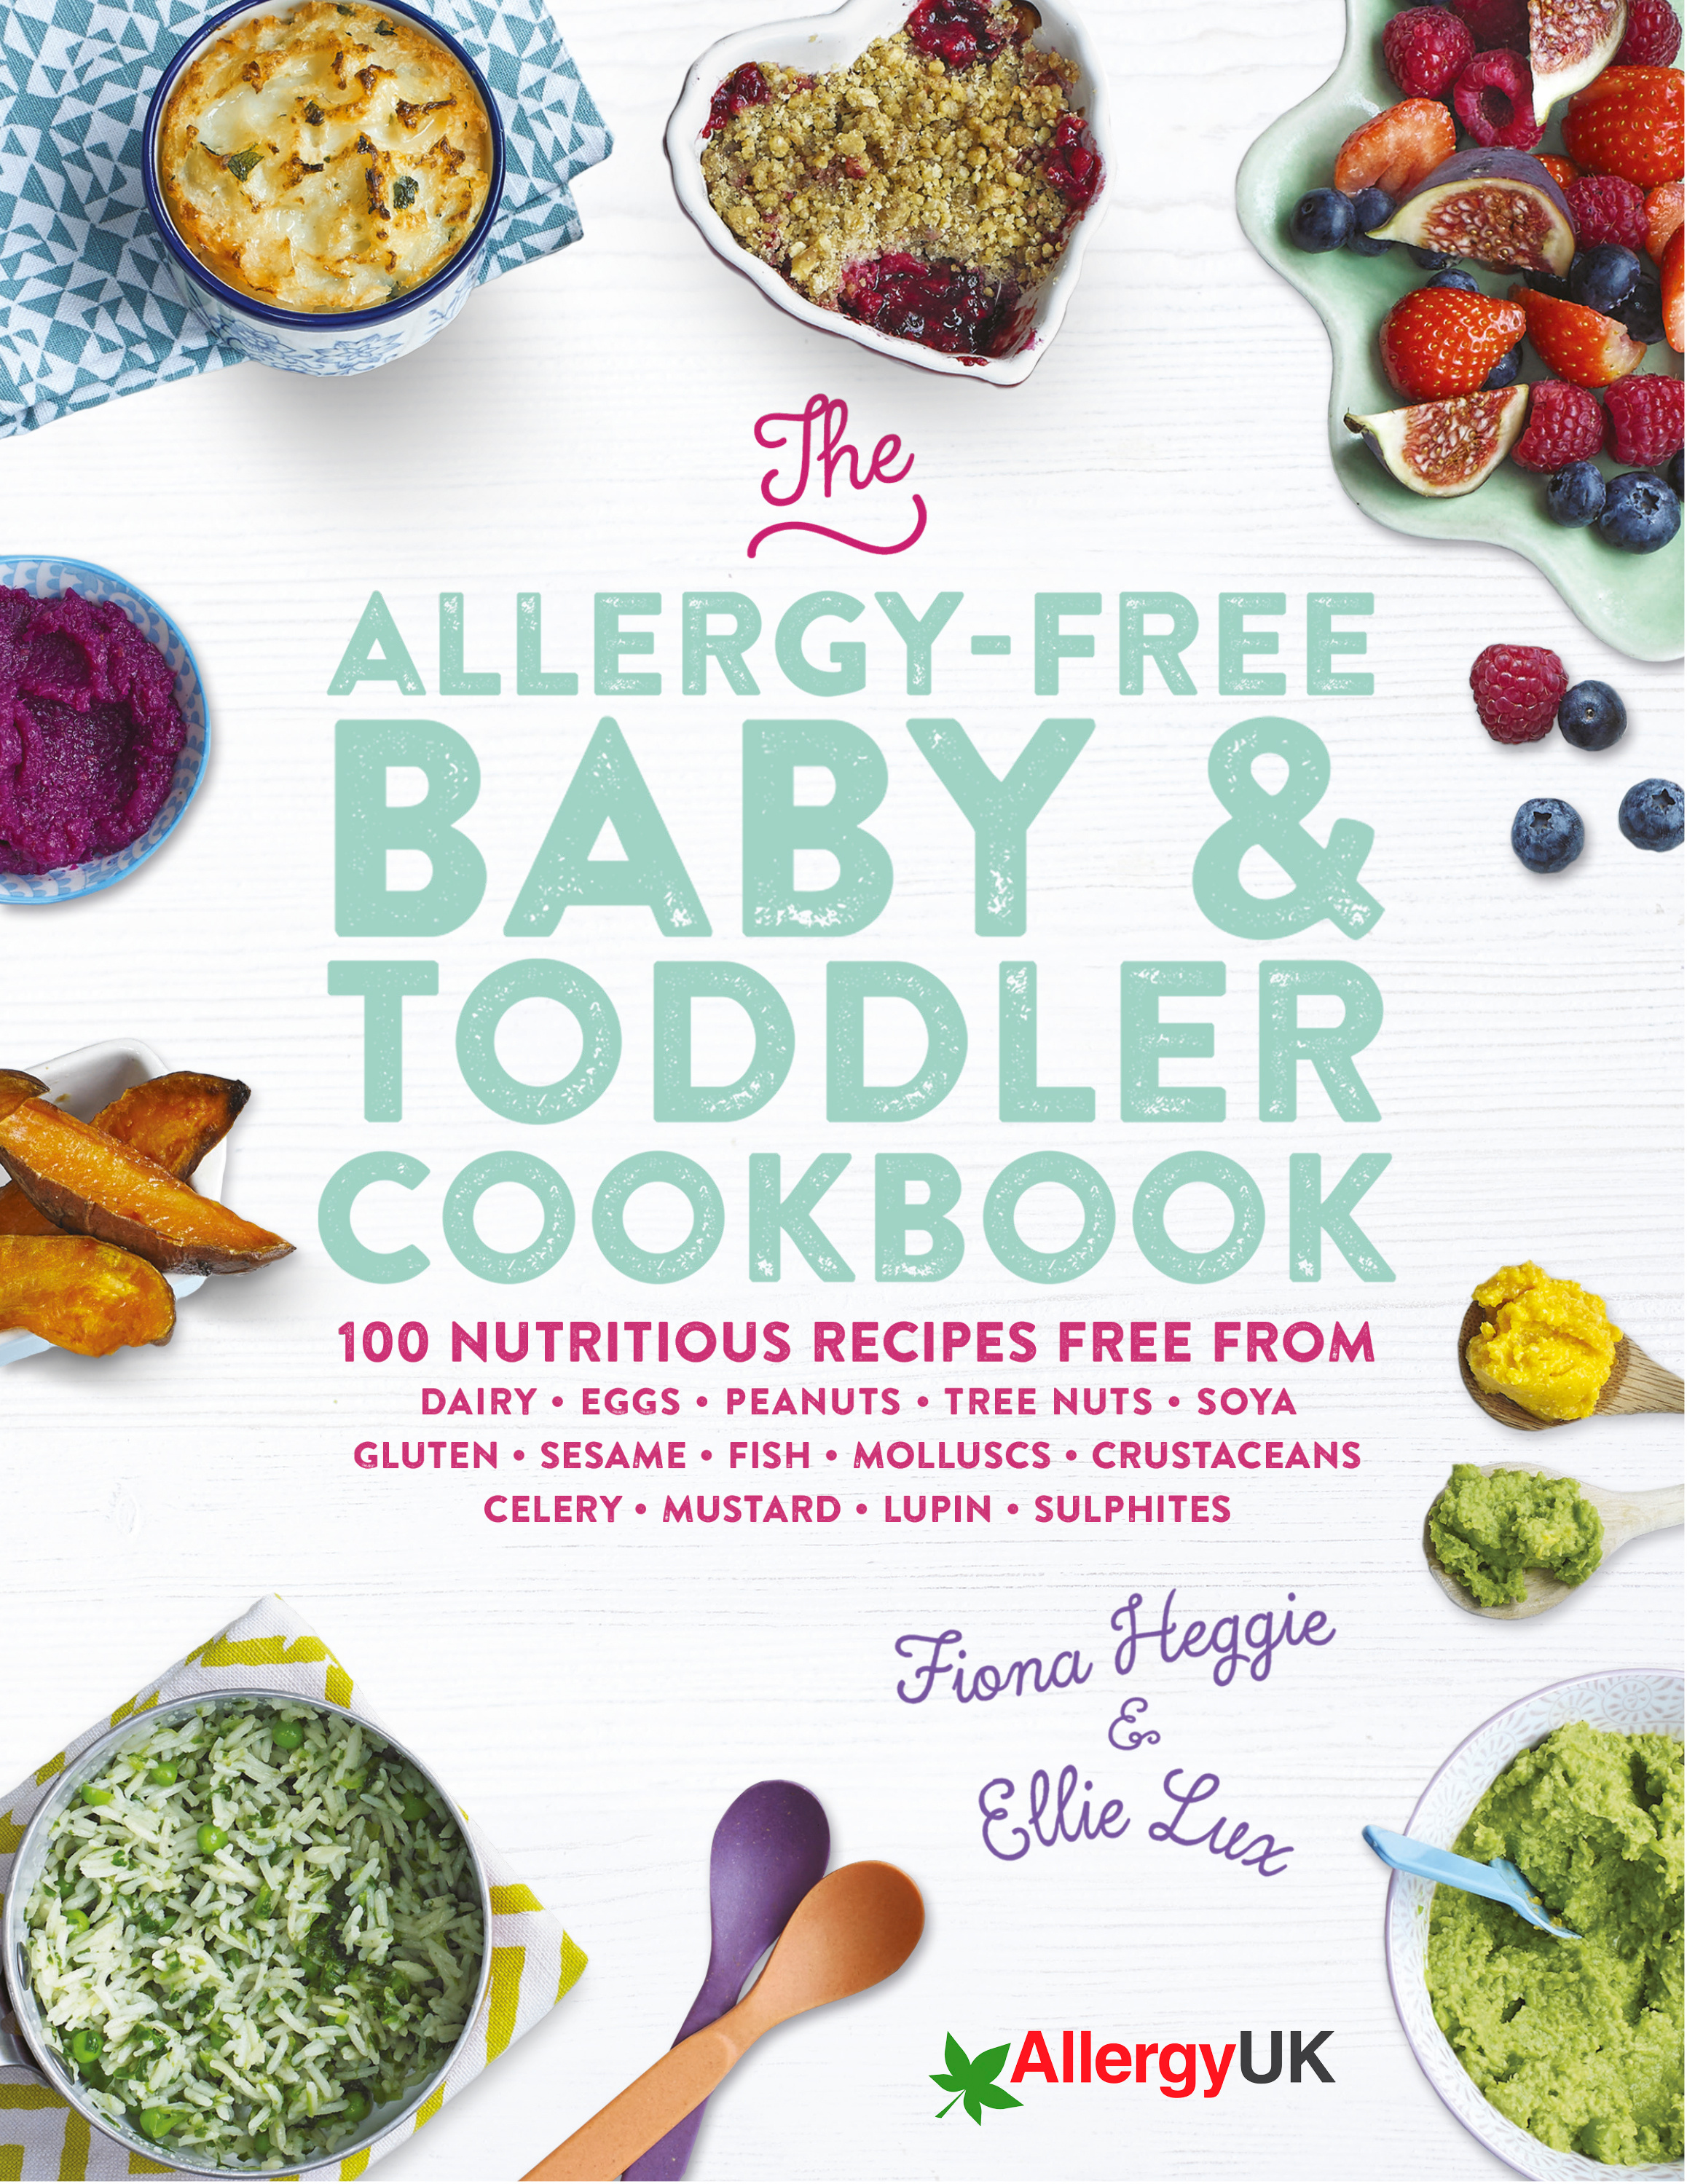 The allergy free baby toddler cookbook 100 delicious recipes free download image download image forumfinder Choice Image